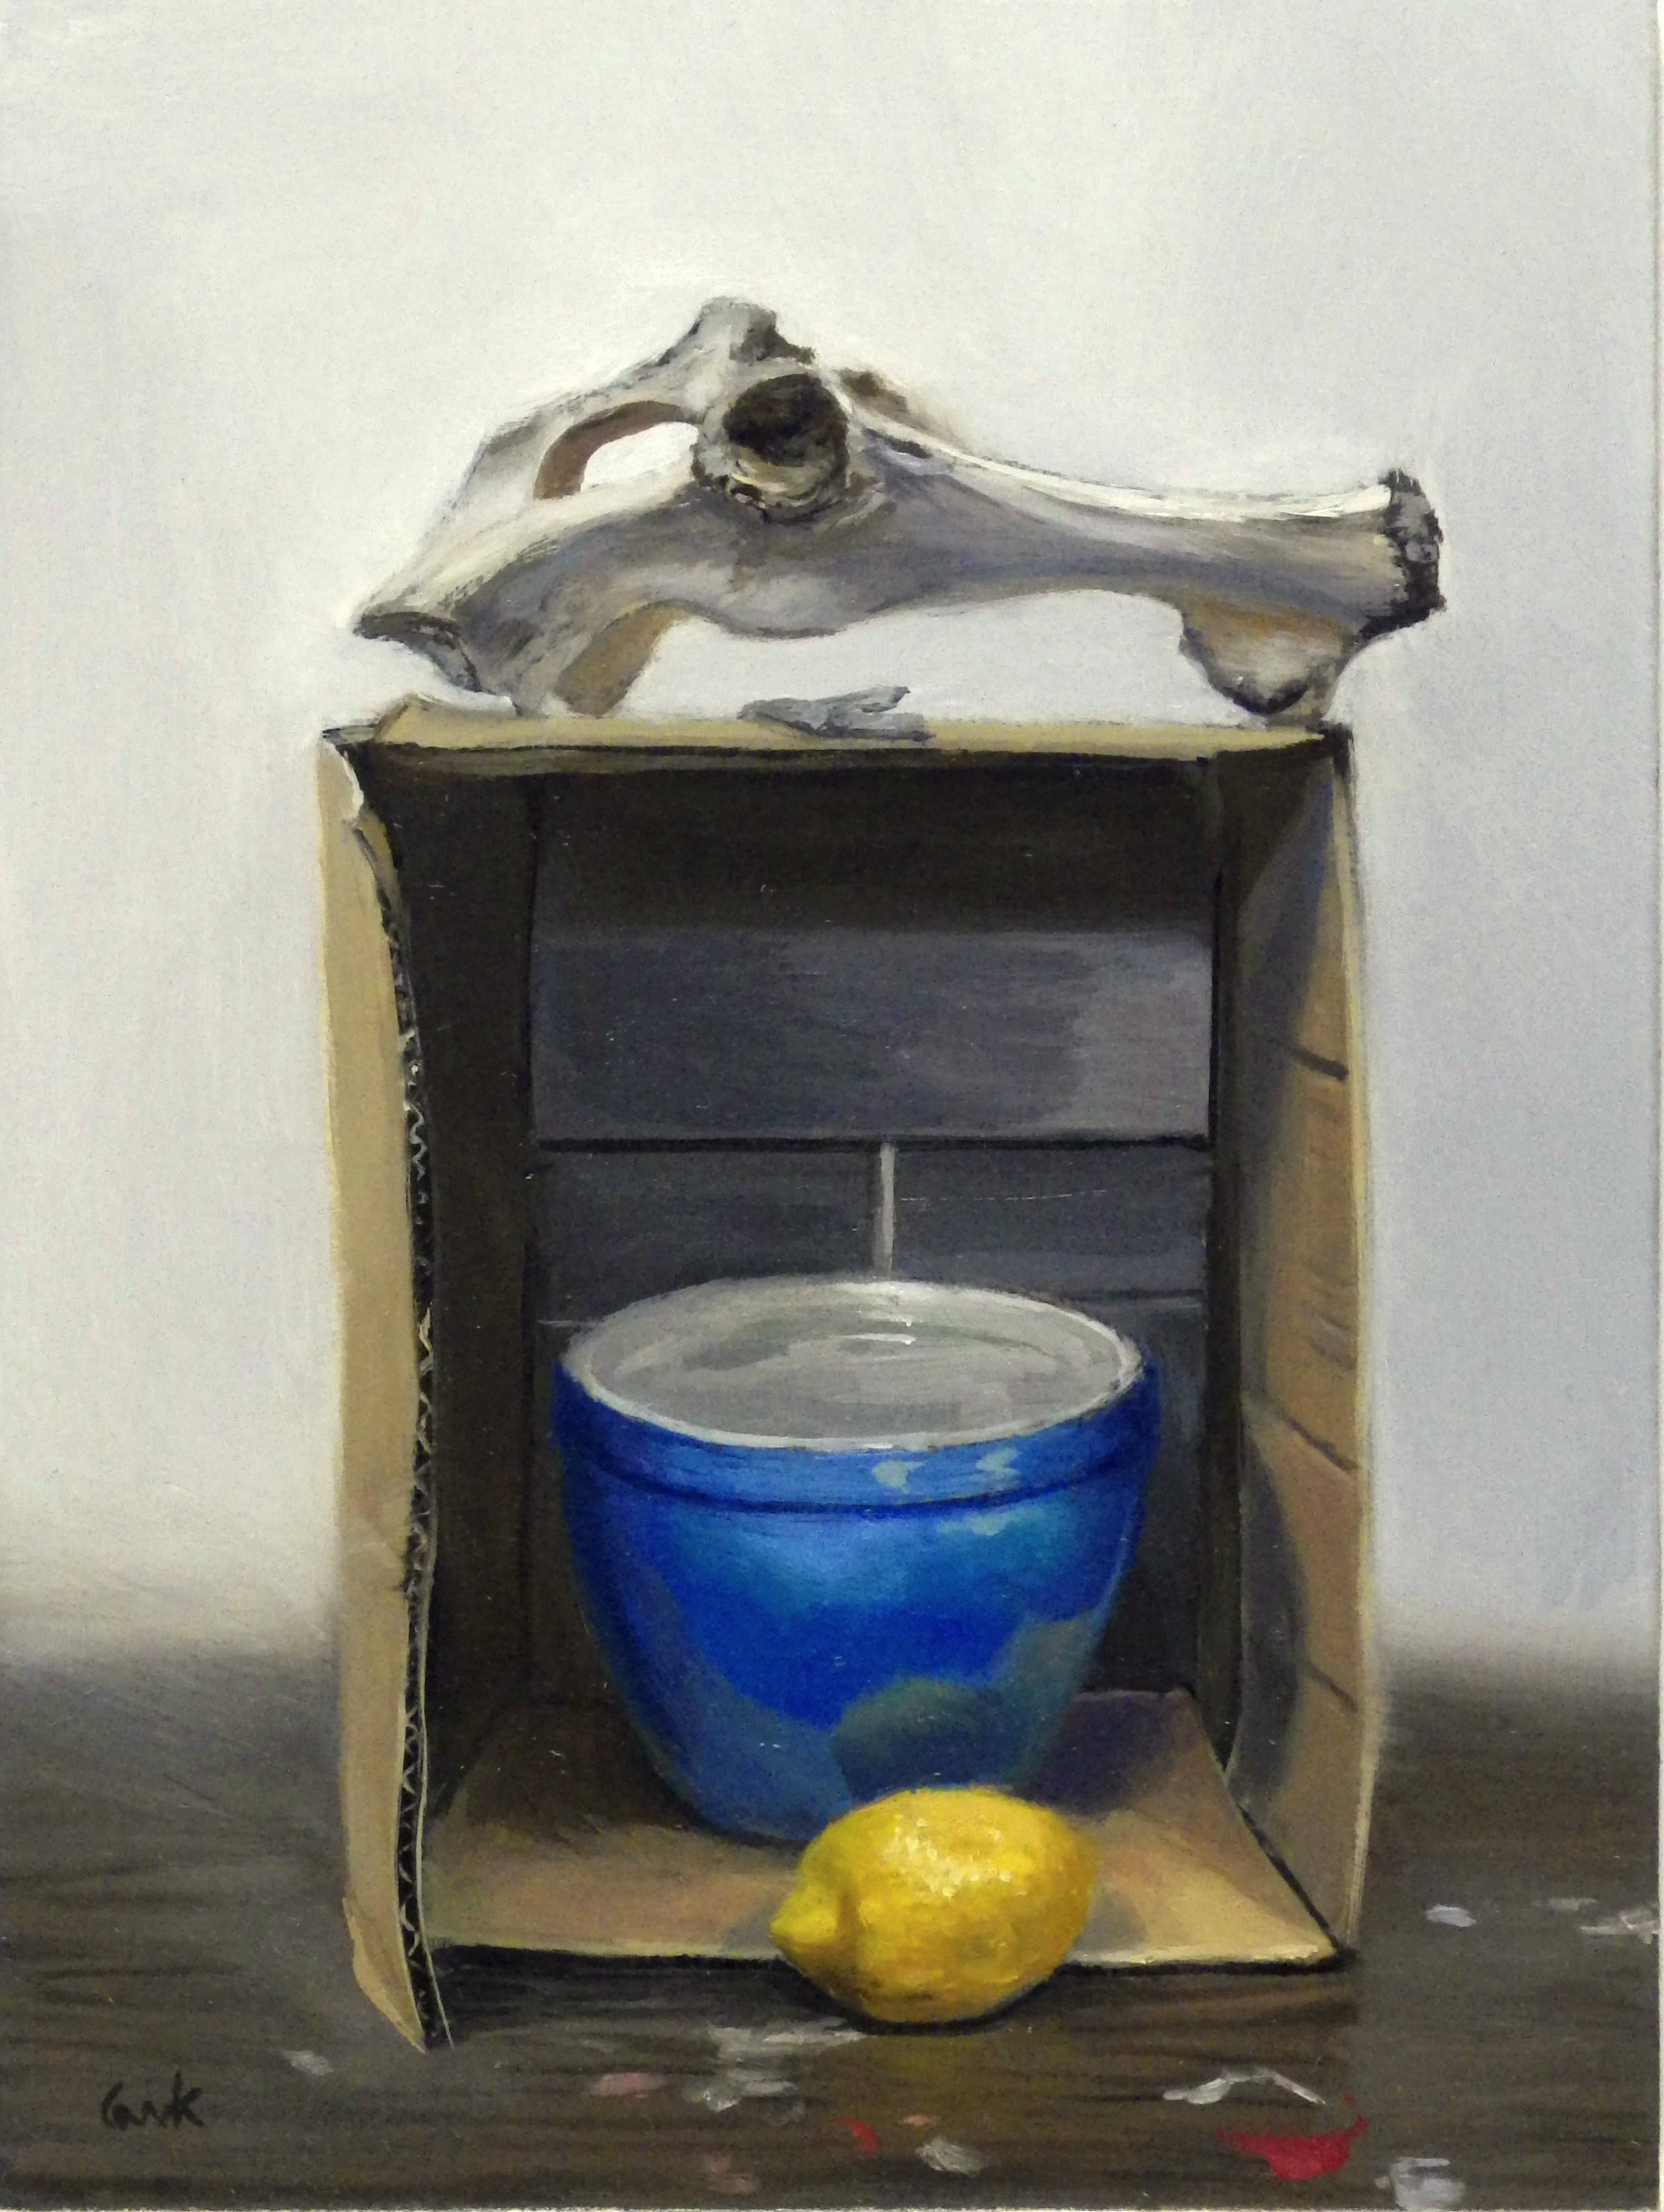 Bone, Box, Bowl, Lemon